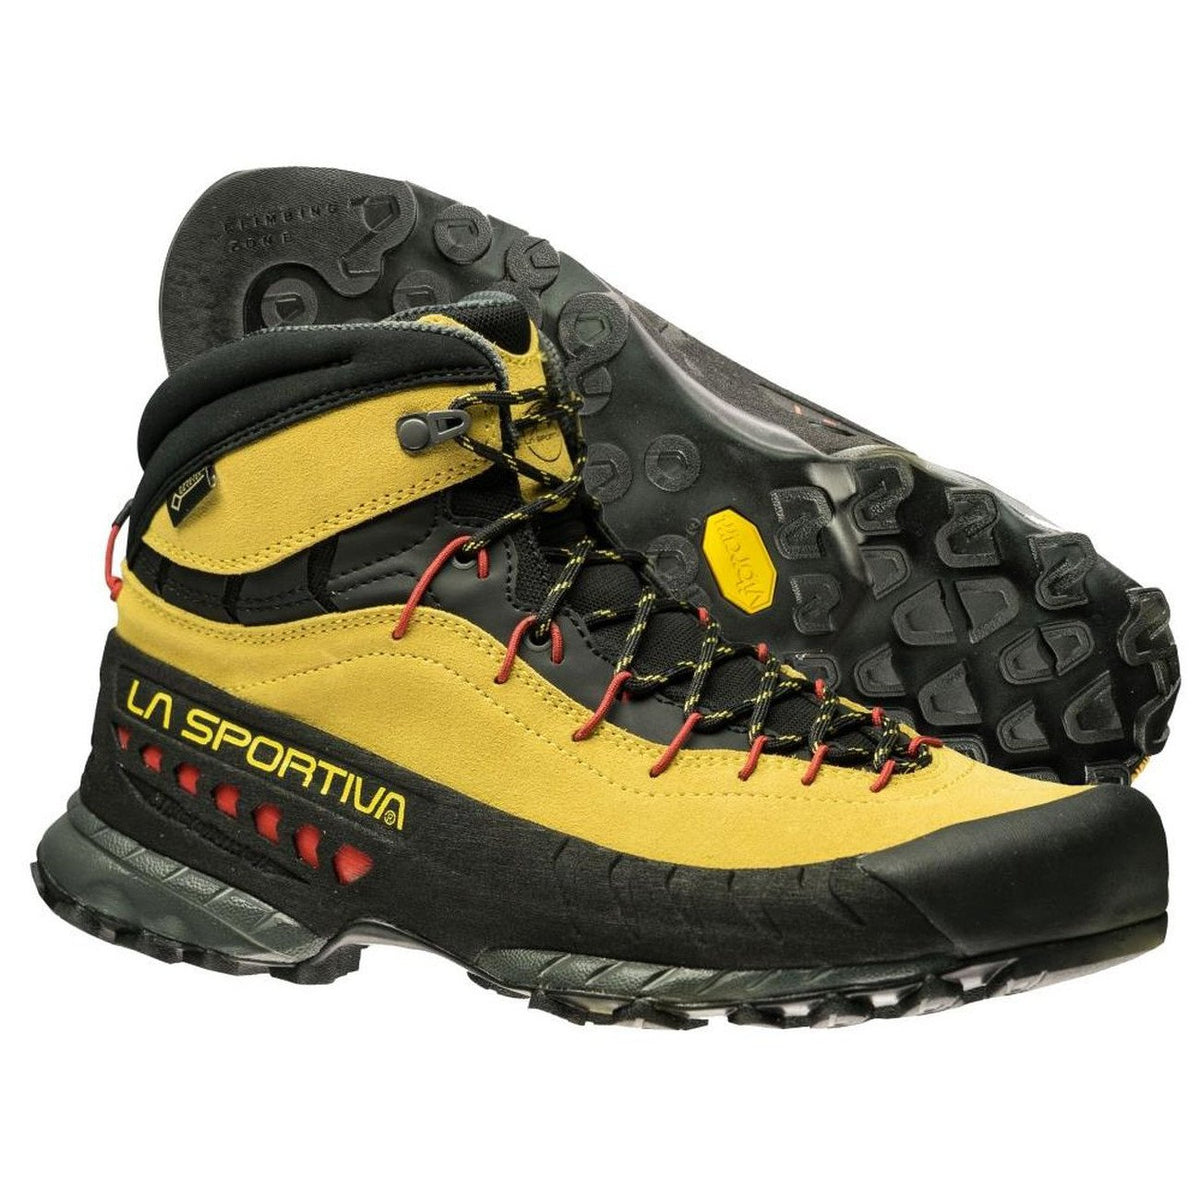 Pair of La Sportiva TX4 Mid GTX approach shoes, one showing the sole, one showing outer side